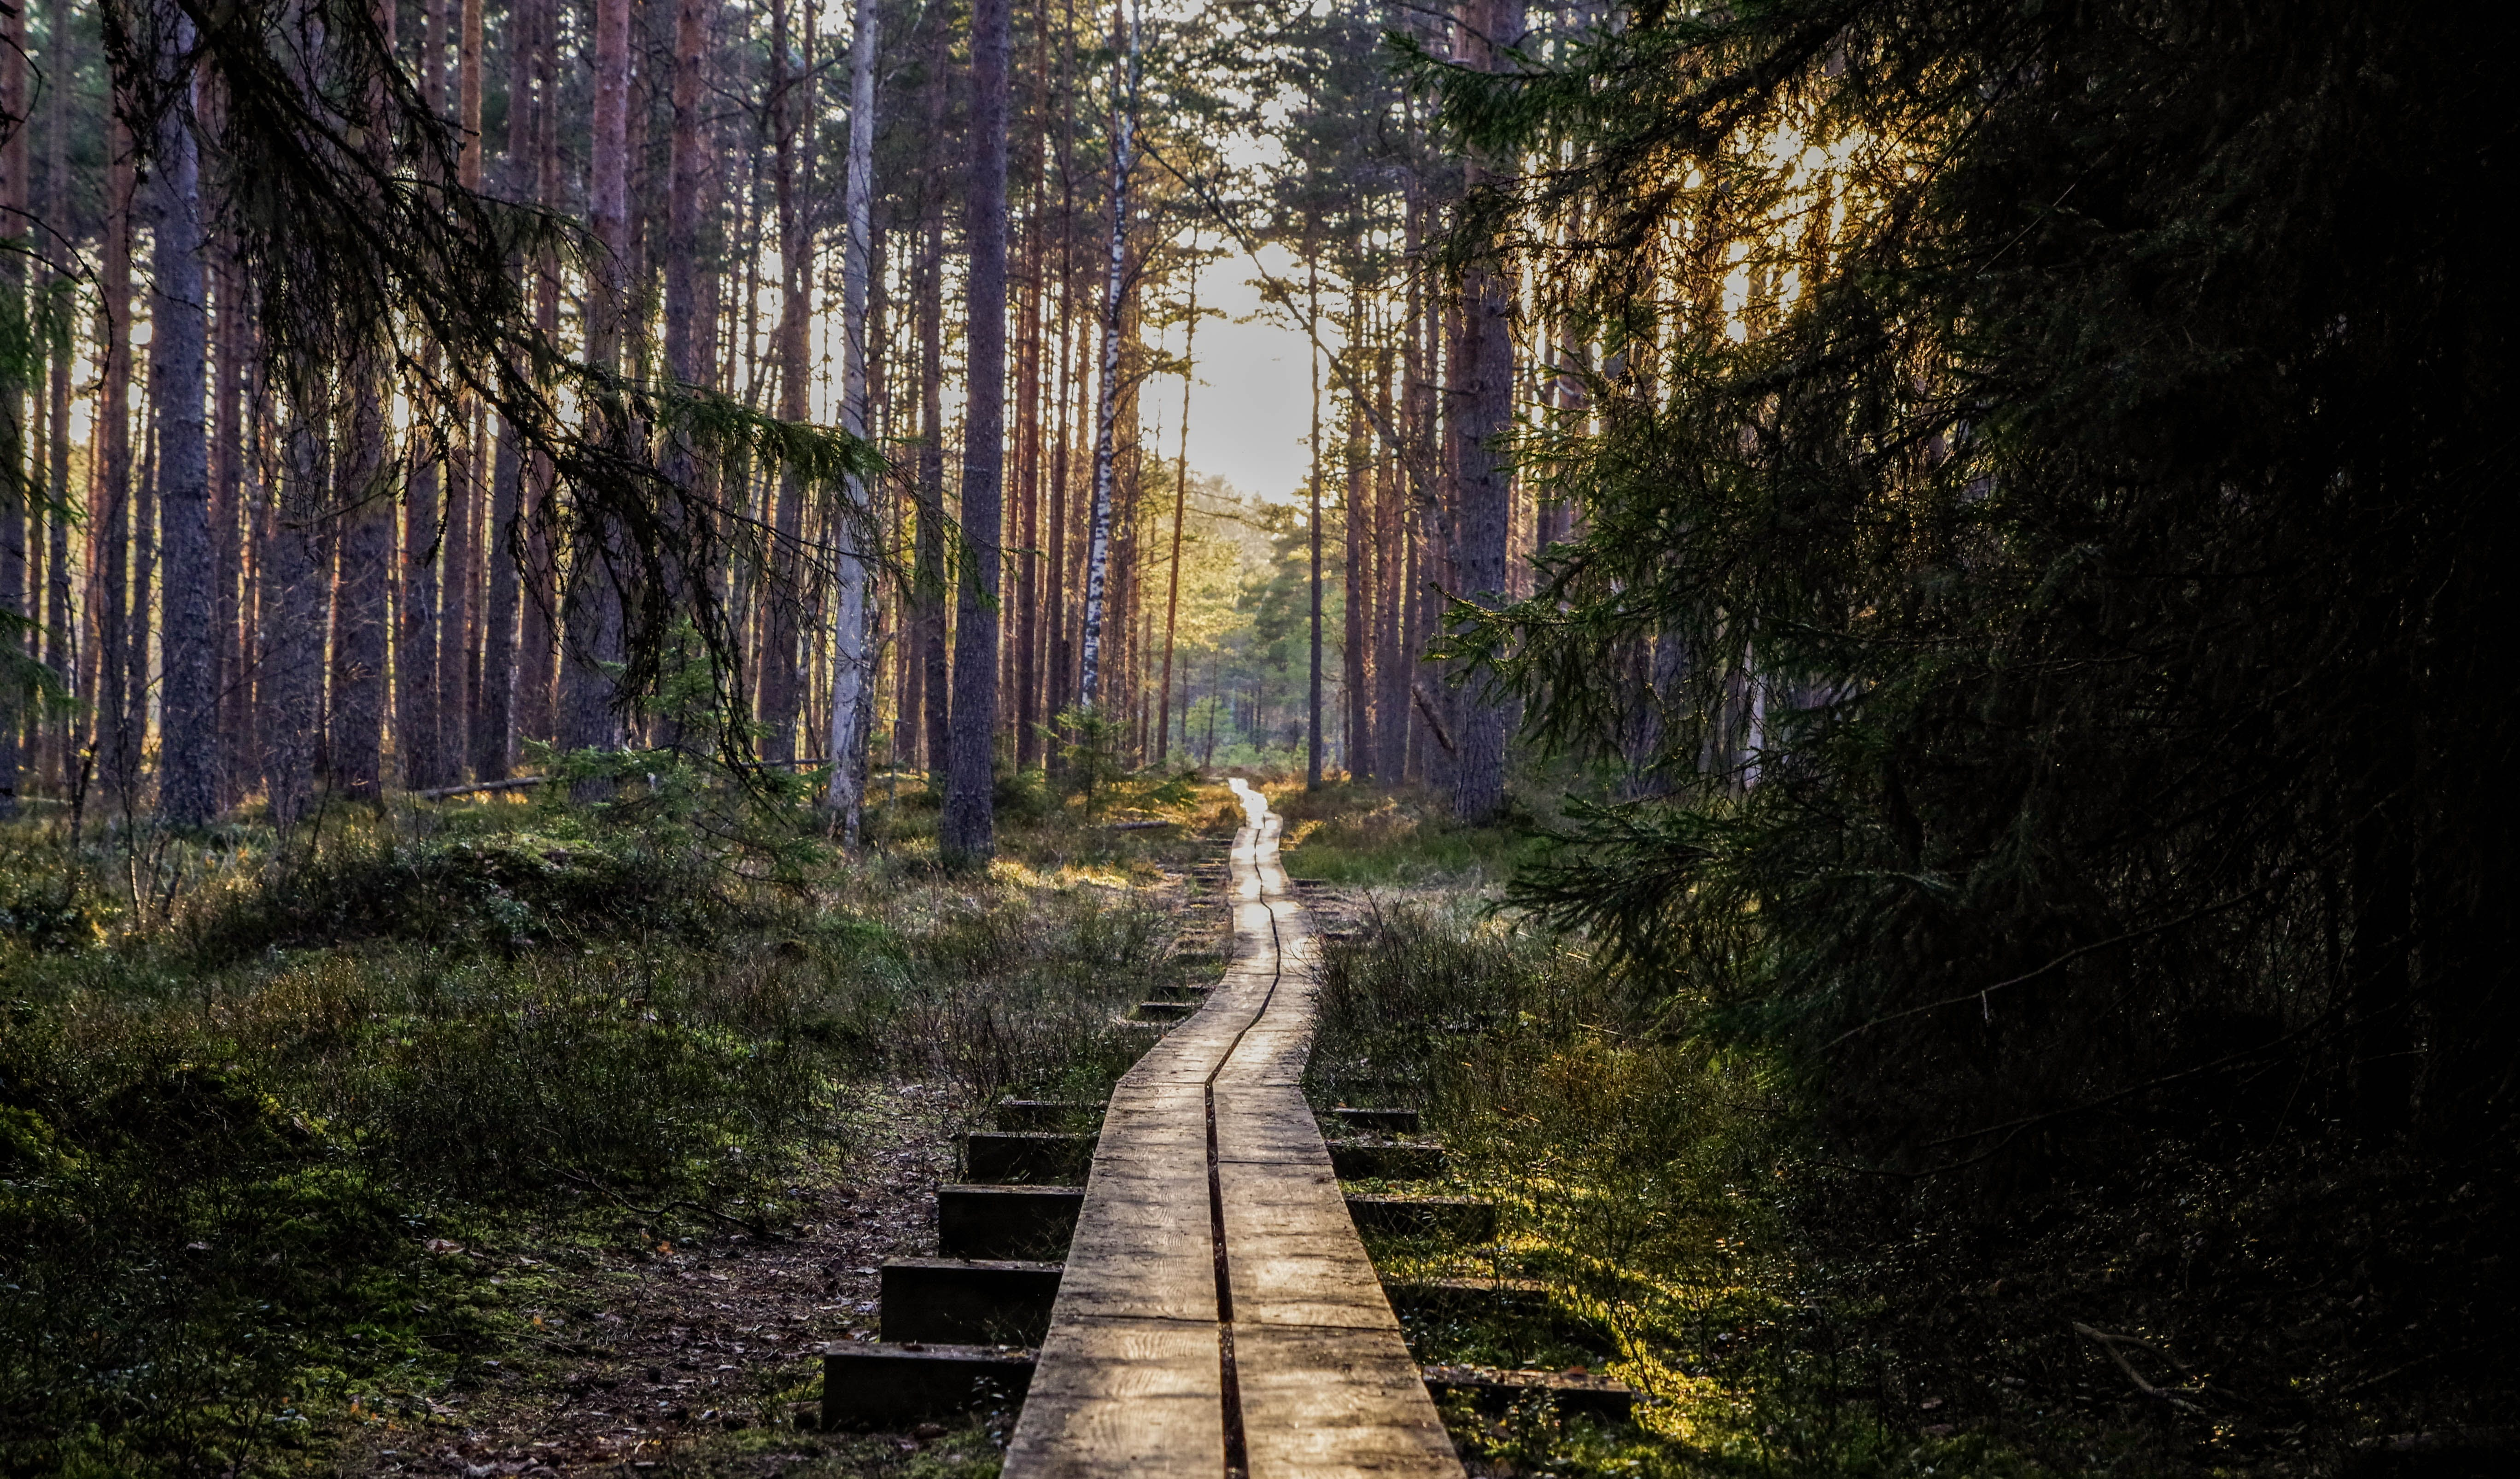 Empty Wooden Pathway in Forest